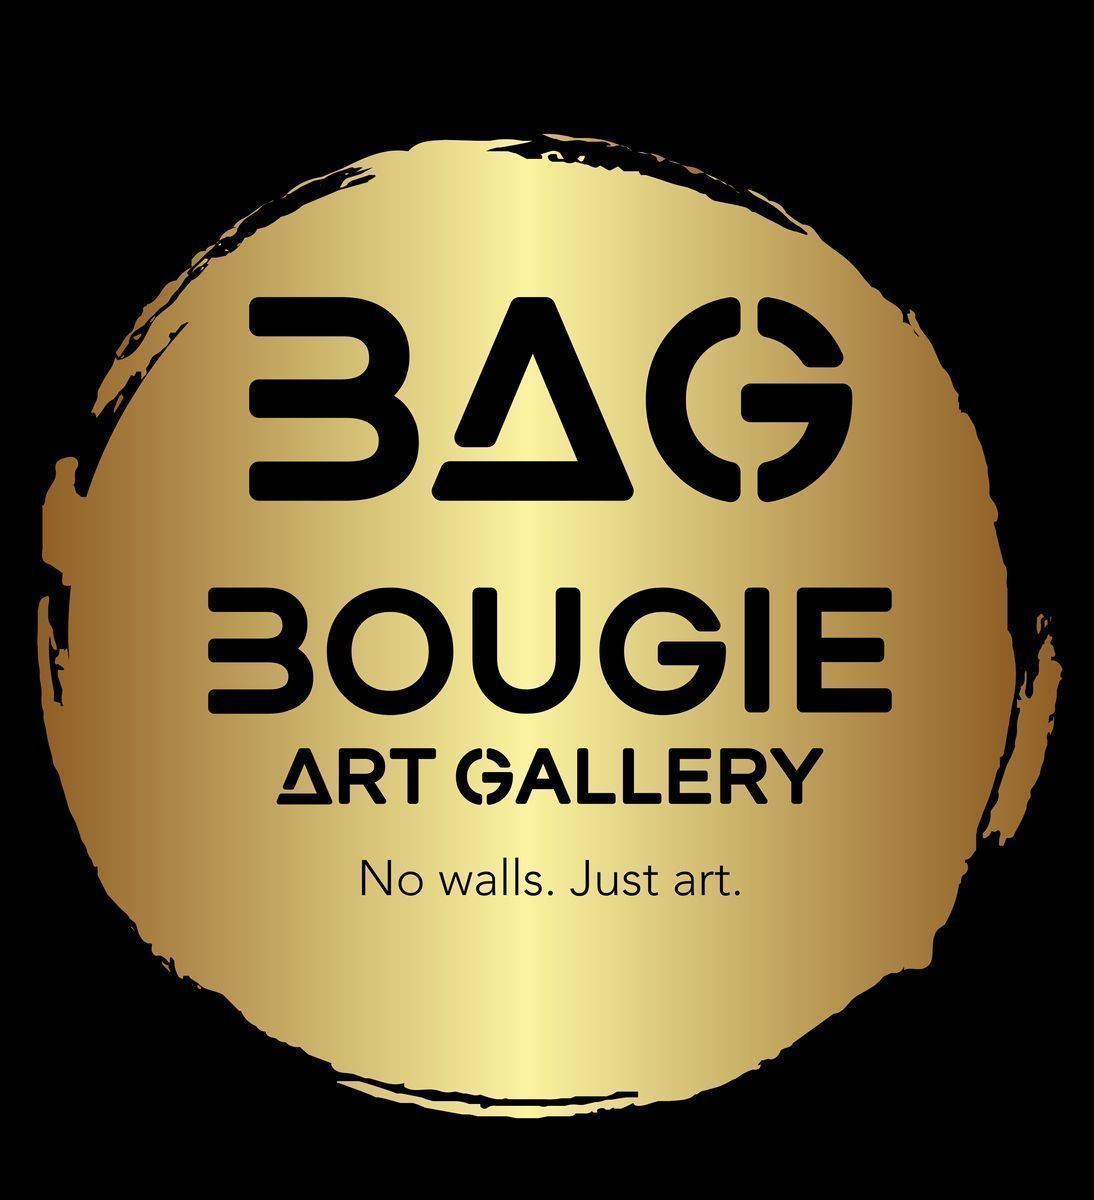 Bougie Art Gallery